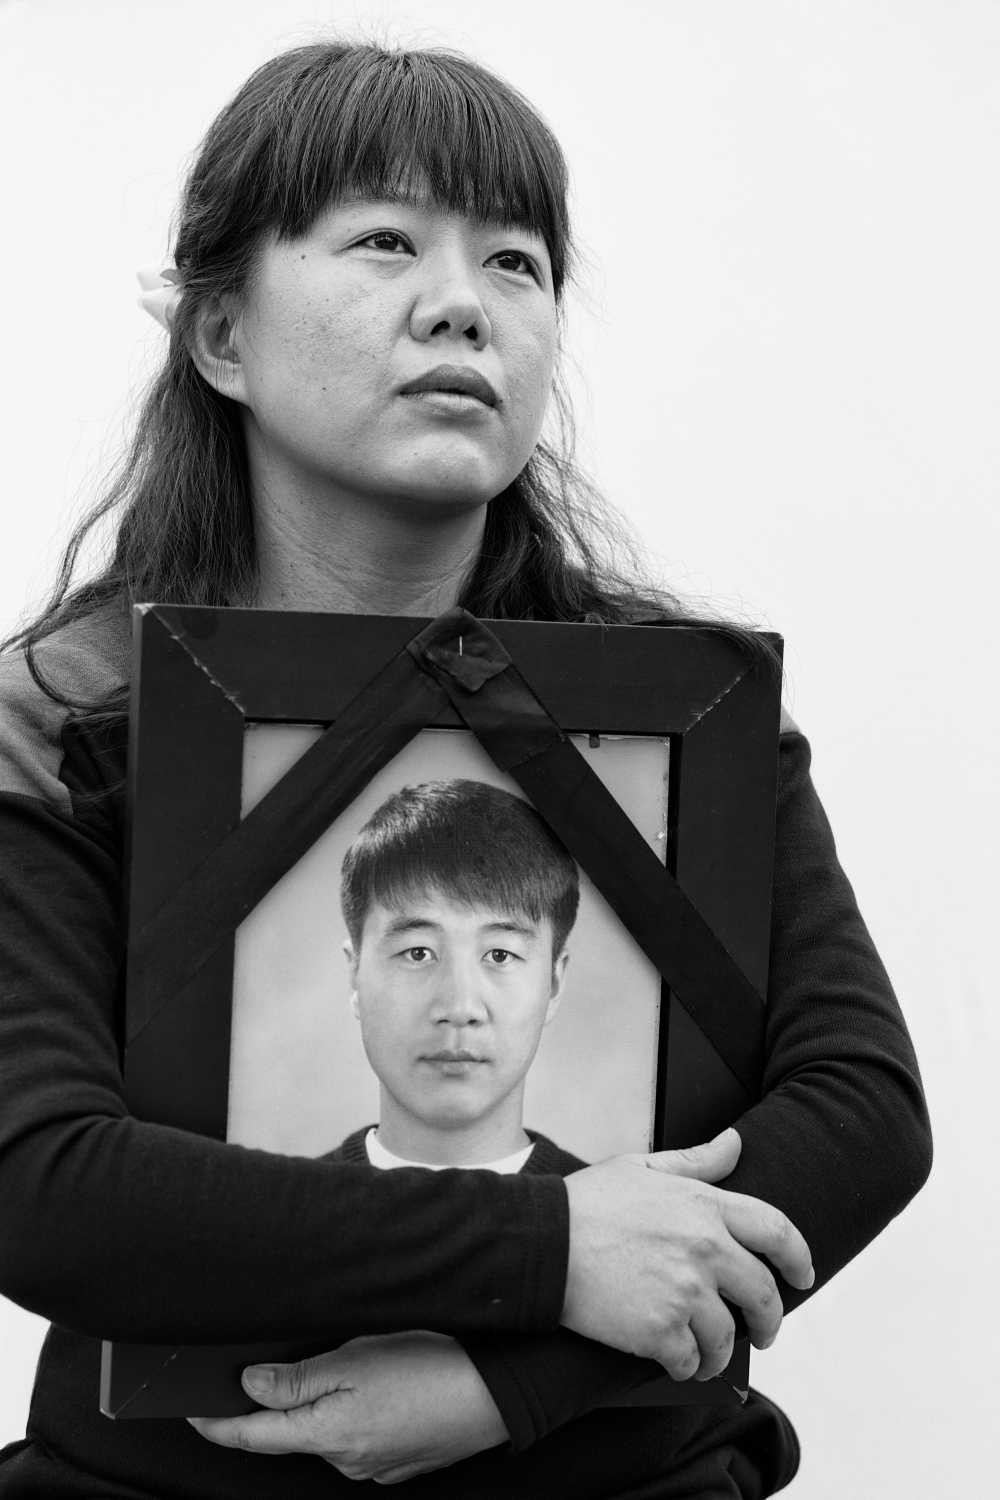 Jung Ae-jung holds the picture of her late husband Hwang Min-woong in Bucheon, South Korea on Nov. 9, 2013. Jung Ae-jung and Hwang Min-woong, her husband worked together at Samsung Electronics factory. Hwang worked at the factory from 1997 to 2002 and died of acute lymphocytic leukemia in 2004.